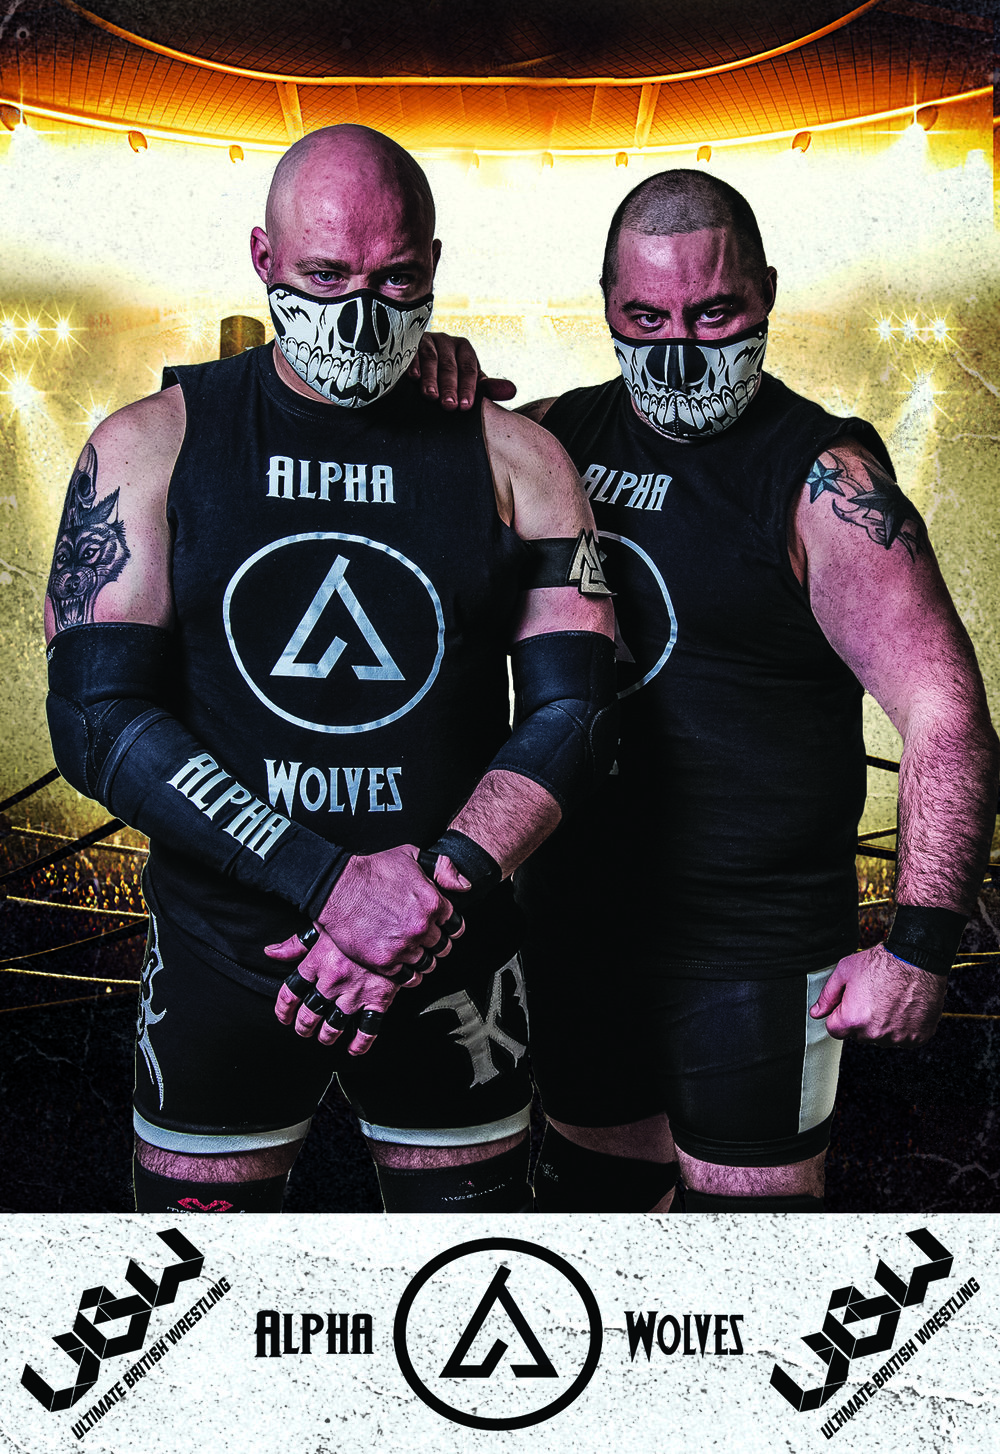 The alpha wolves   Is there anything more intimidating than a hardened beast of a wrestler, who shows no compassion or mercy to any of his opponents? Yes. When there are two of them.  Kruiz and Johnny Knox make up the deadly duo of The Alpha Wolves, a team that has made an impact never felt in UBW, and sure enough, have quickly ripped apart the tag team division and sit at the top of the food chain as the UBW Tag Team Champions. Their shared experience combined with their absolute brutality begs the question: Is there anyone who can stop them?